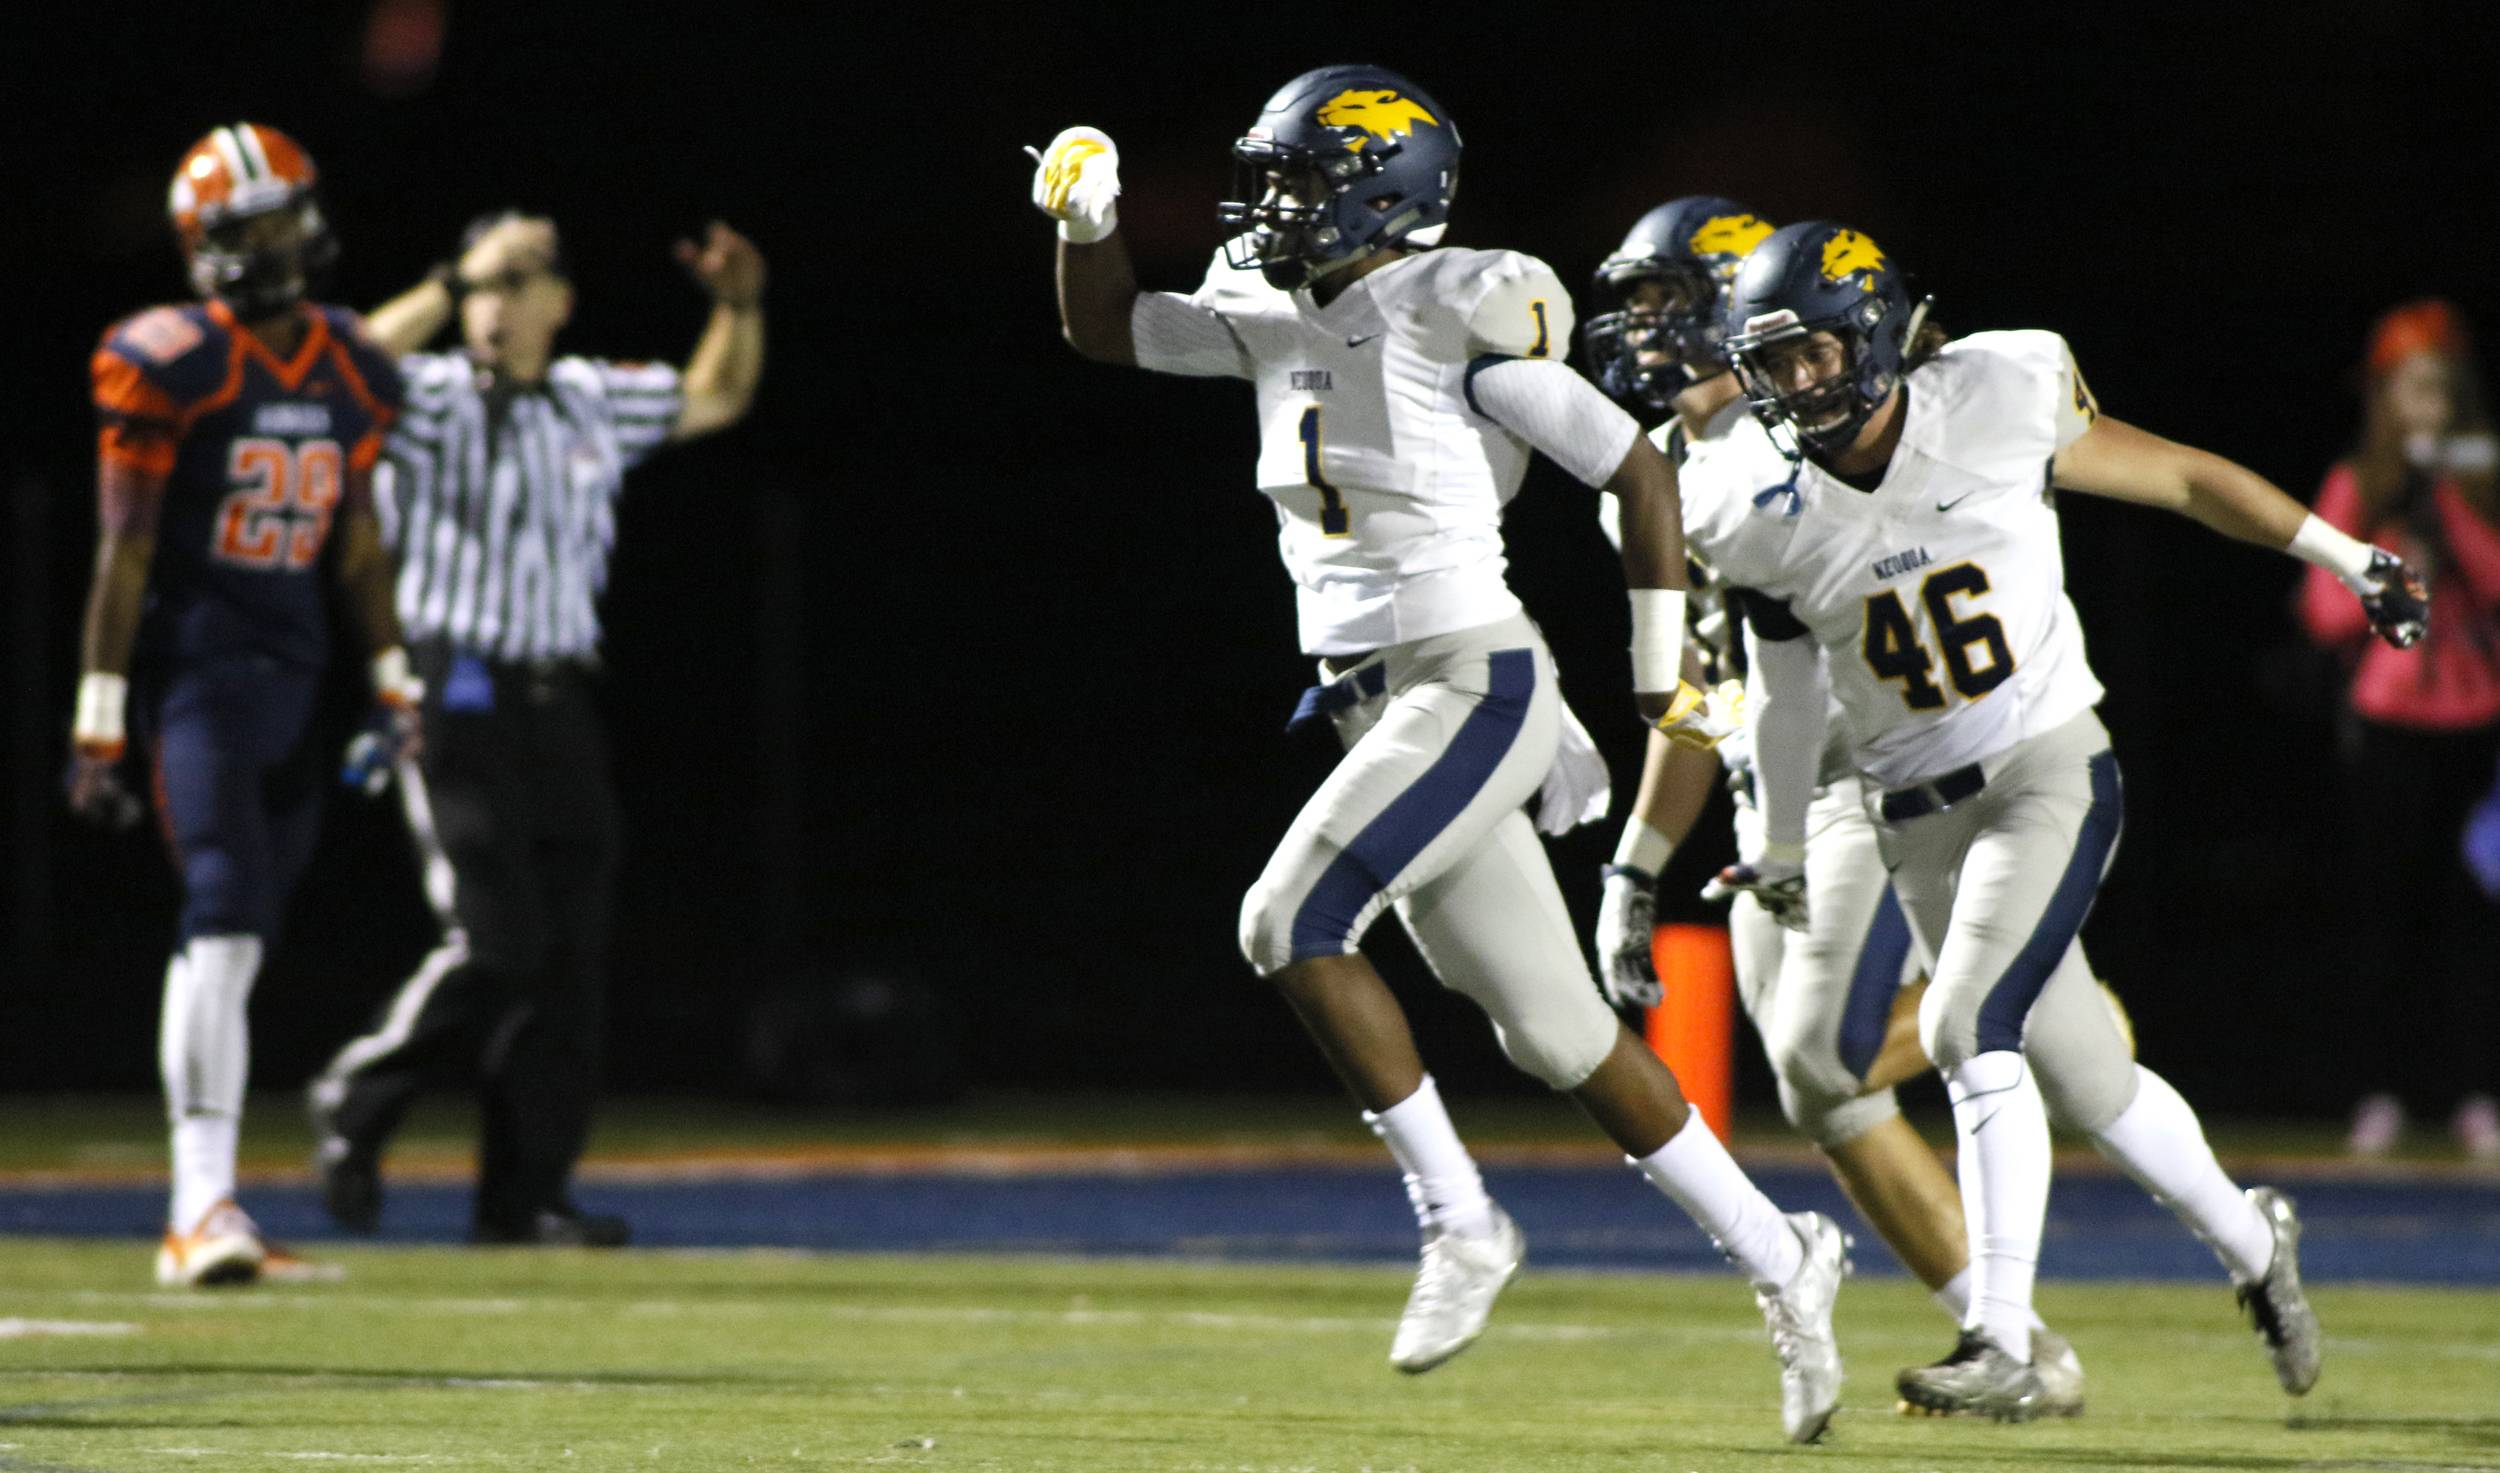 Neuqua Valley's Isaiah Robertson (1) celebrates his first-half fumble recovery which he ran back for a touchdown.